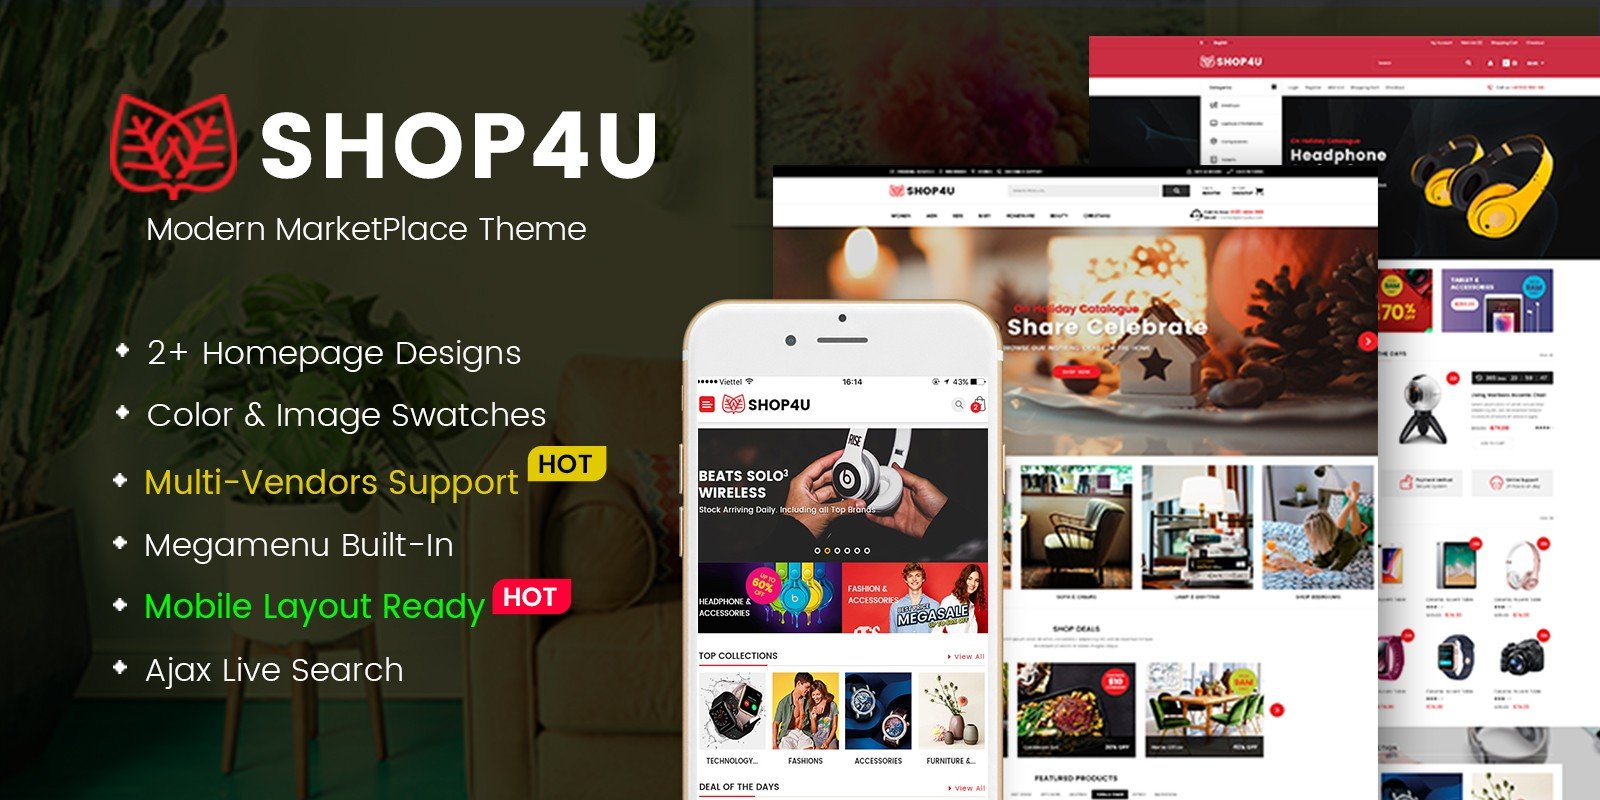 Shop4U - Modern MarketPlace WordPress Theme